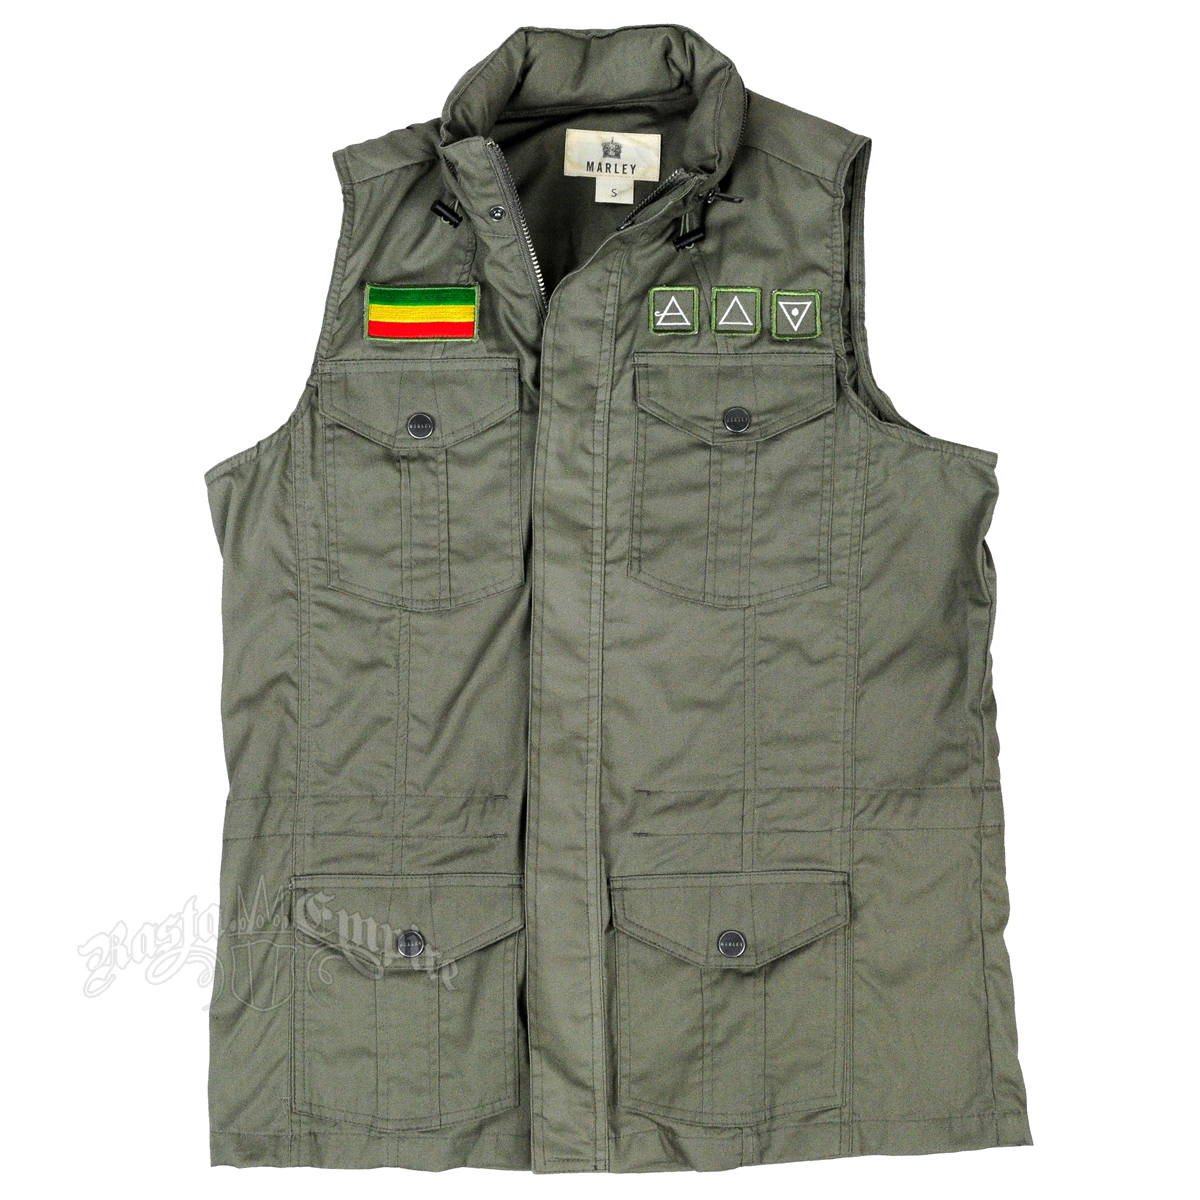 super popular f5d3f 3bfcc Marley Dusty Olive Military Vest - Men s